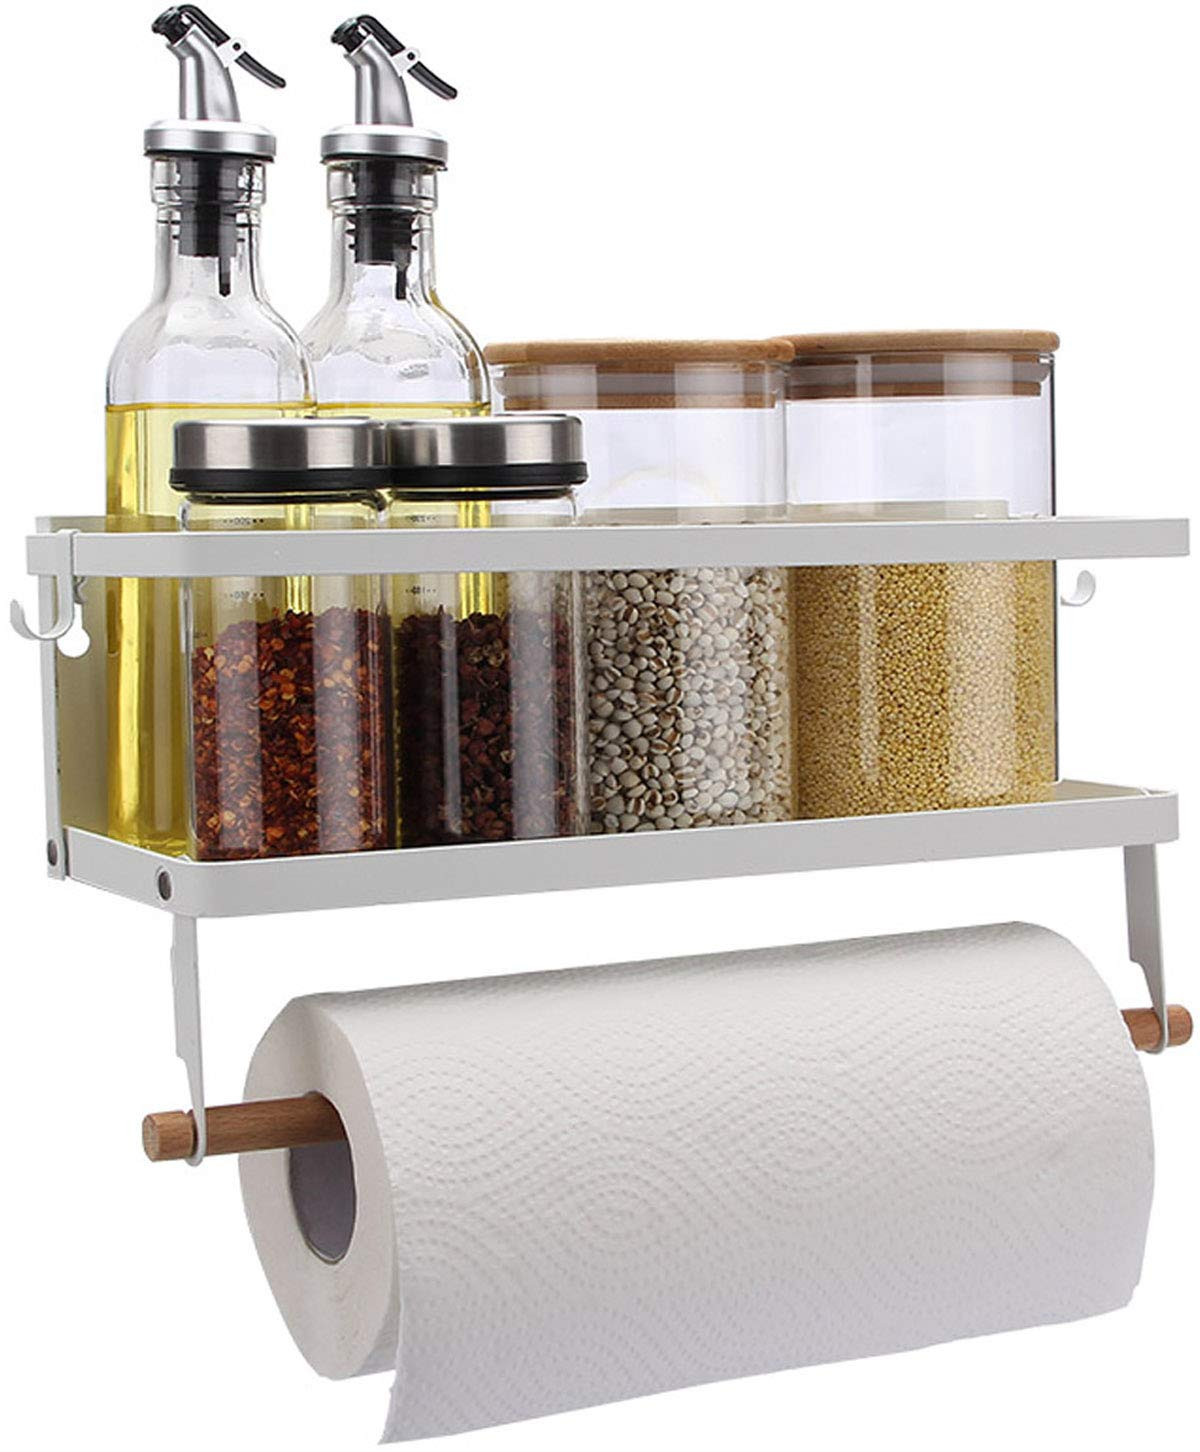 Magnetic Fridge Organizer, Paper Towel Holder, Kitchen Rack, Rustproof Spice Jars Rack, with 2 Removable Mobile Hooks (White)